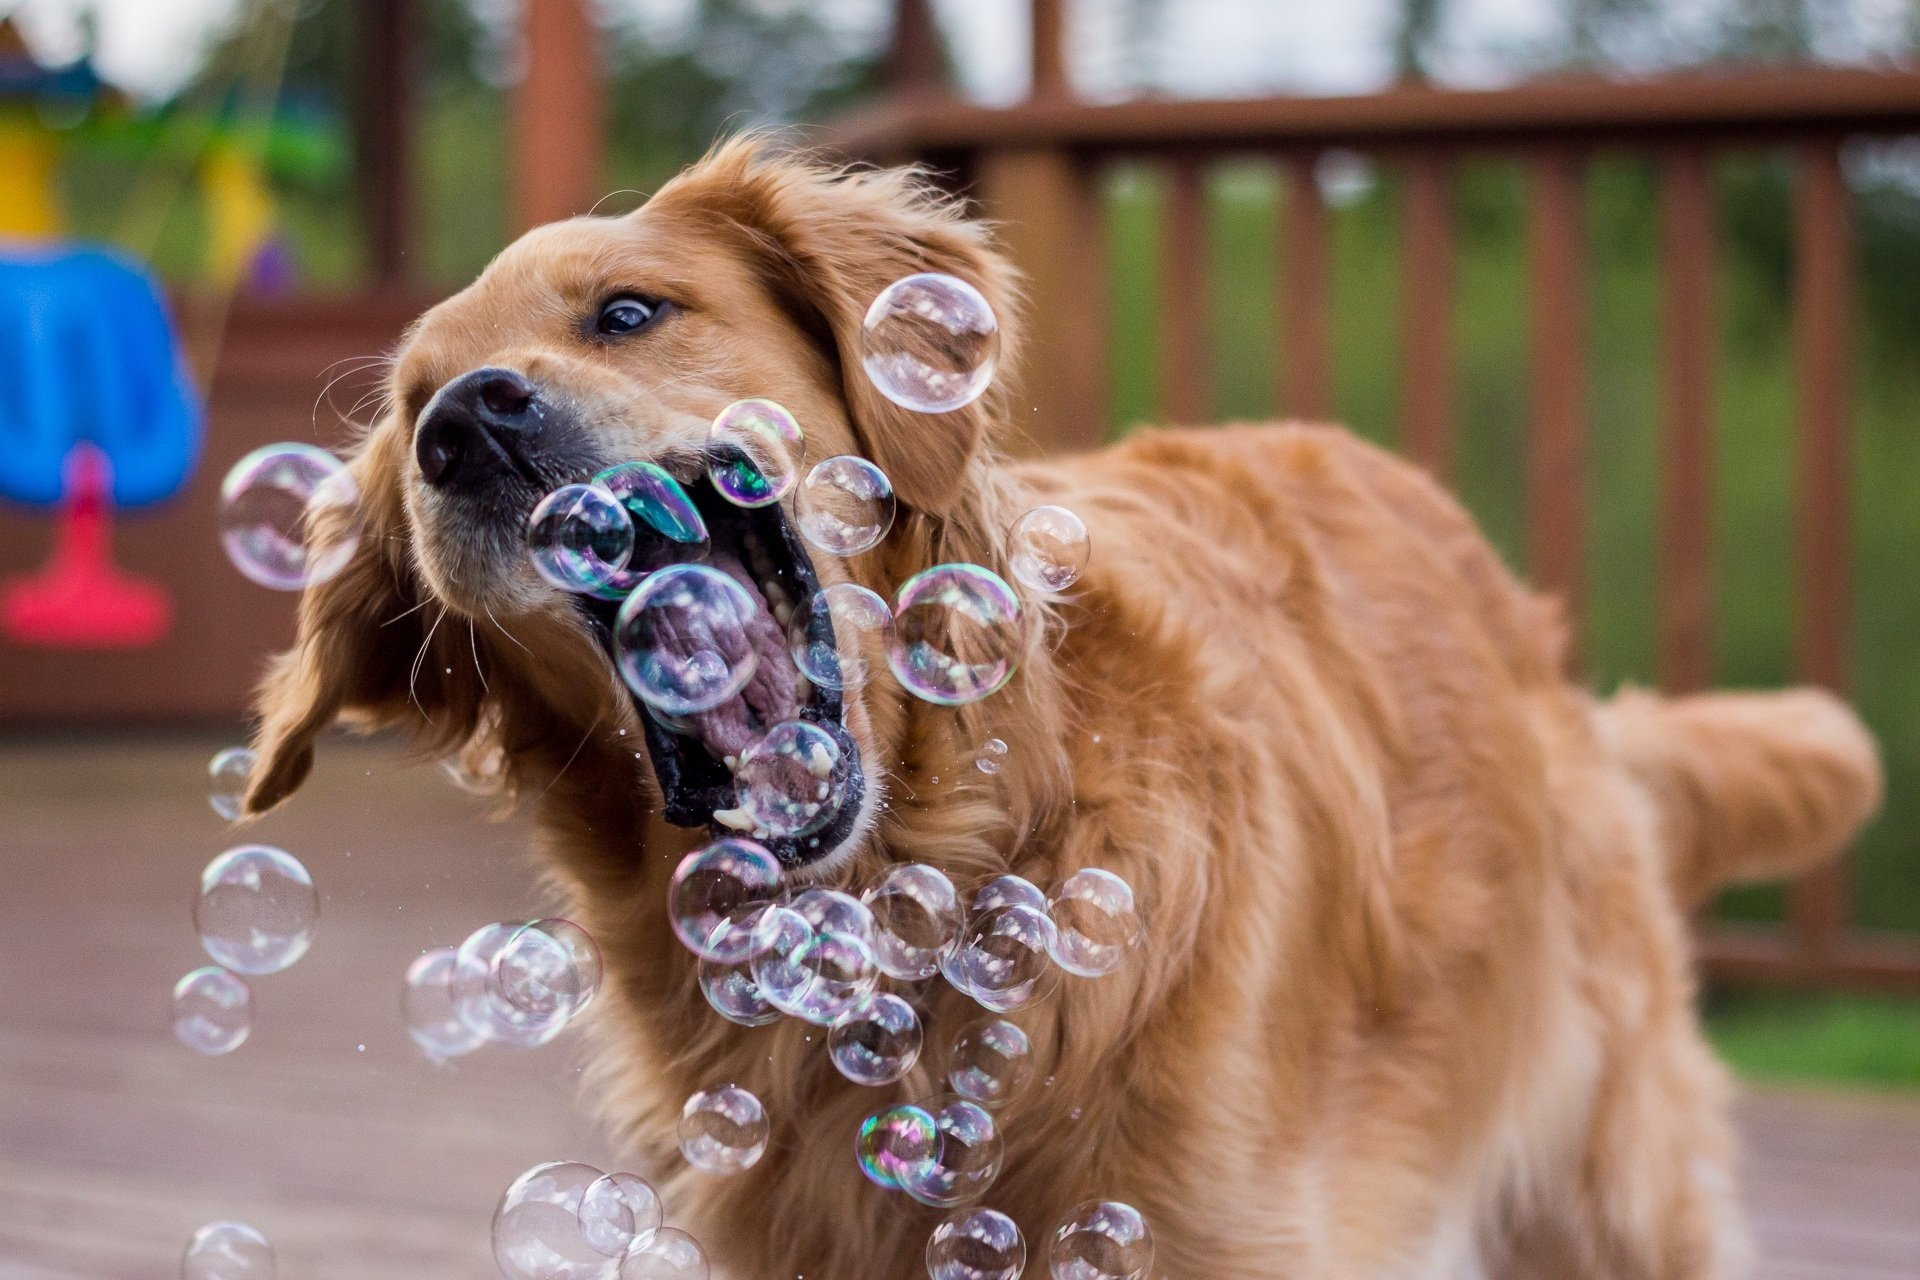 Image: Dog, golden, retriever, soap, bubbles, catches, plays